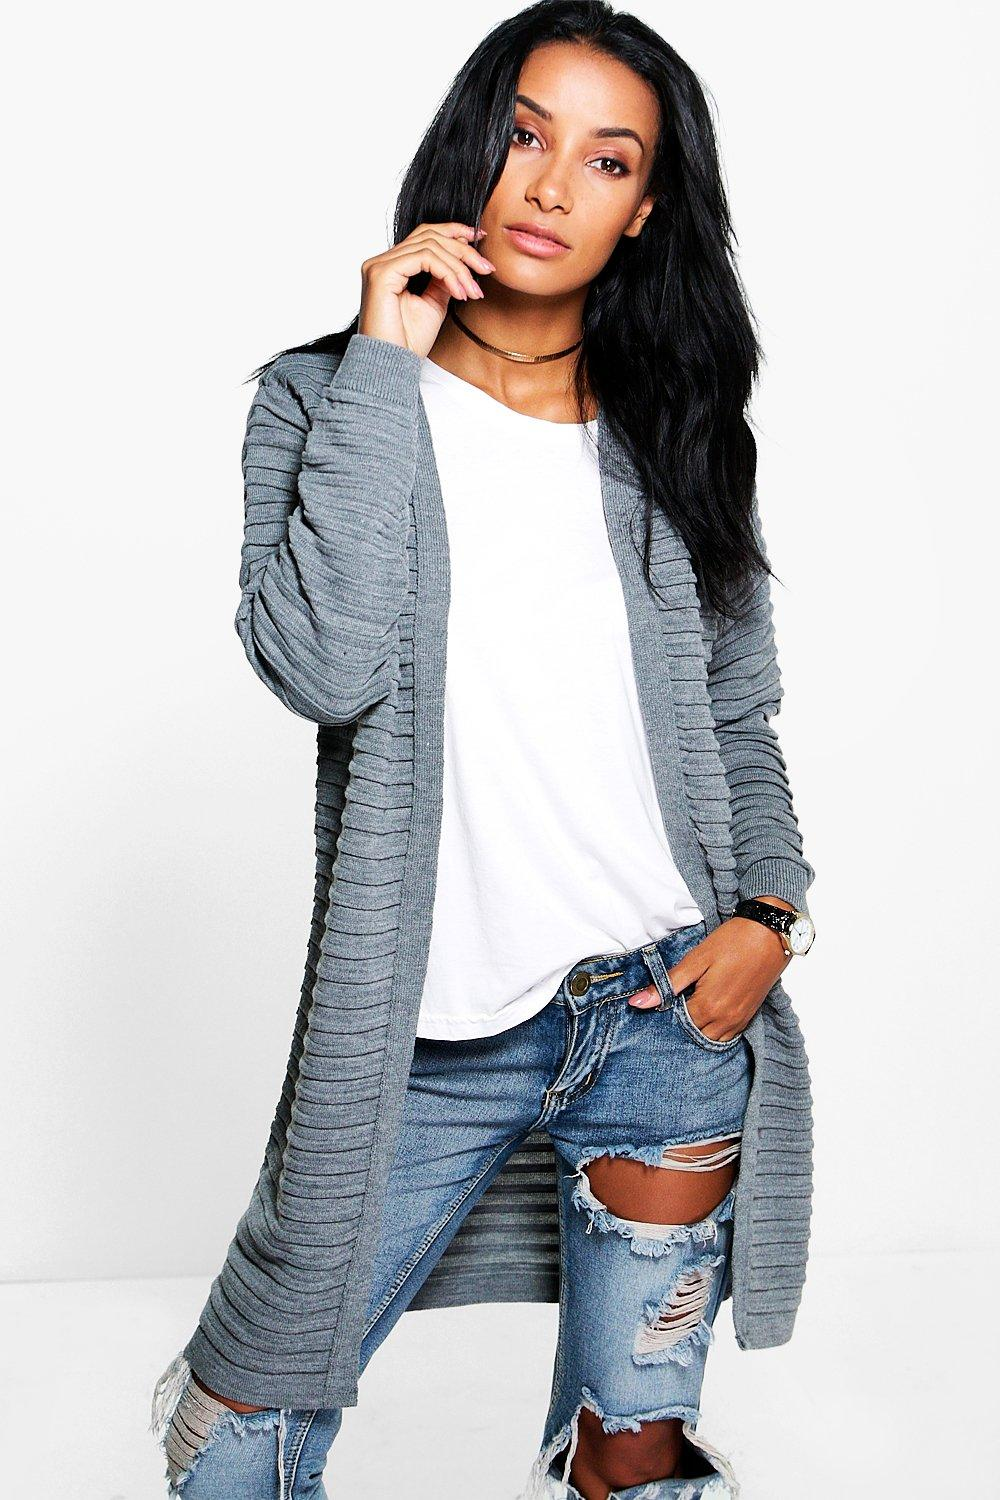 Nicole Rib Edge To Edge Cardigan